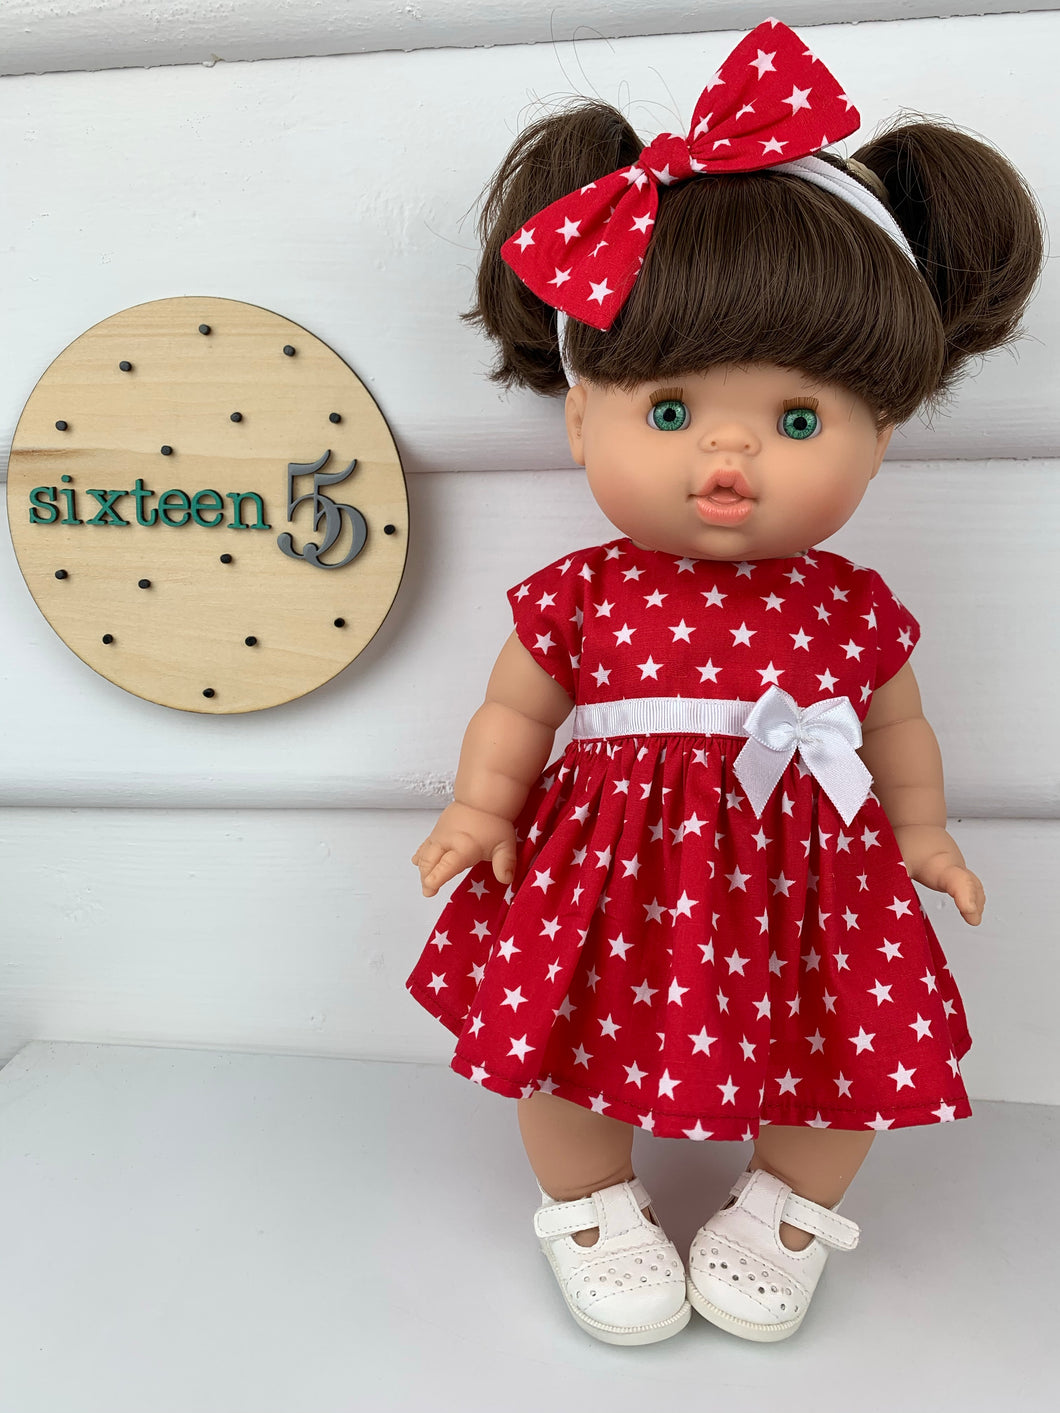 Red Stars - 34 / 38 cm Miniland & Minikane Dolls Dress